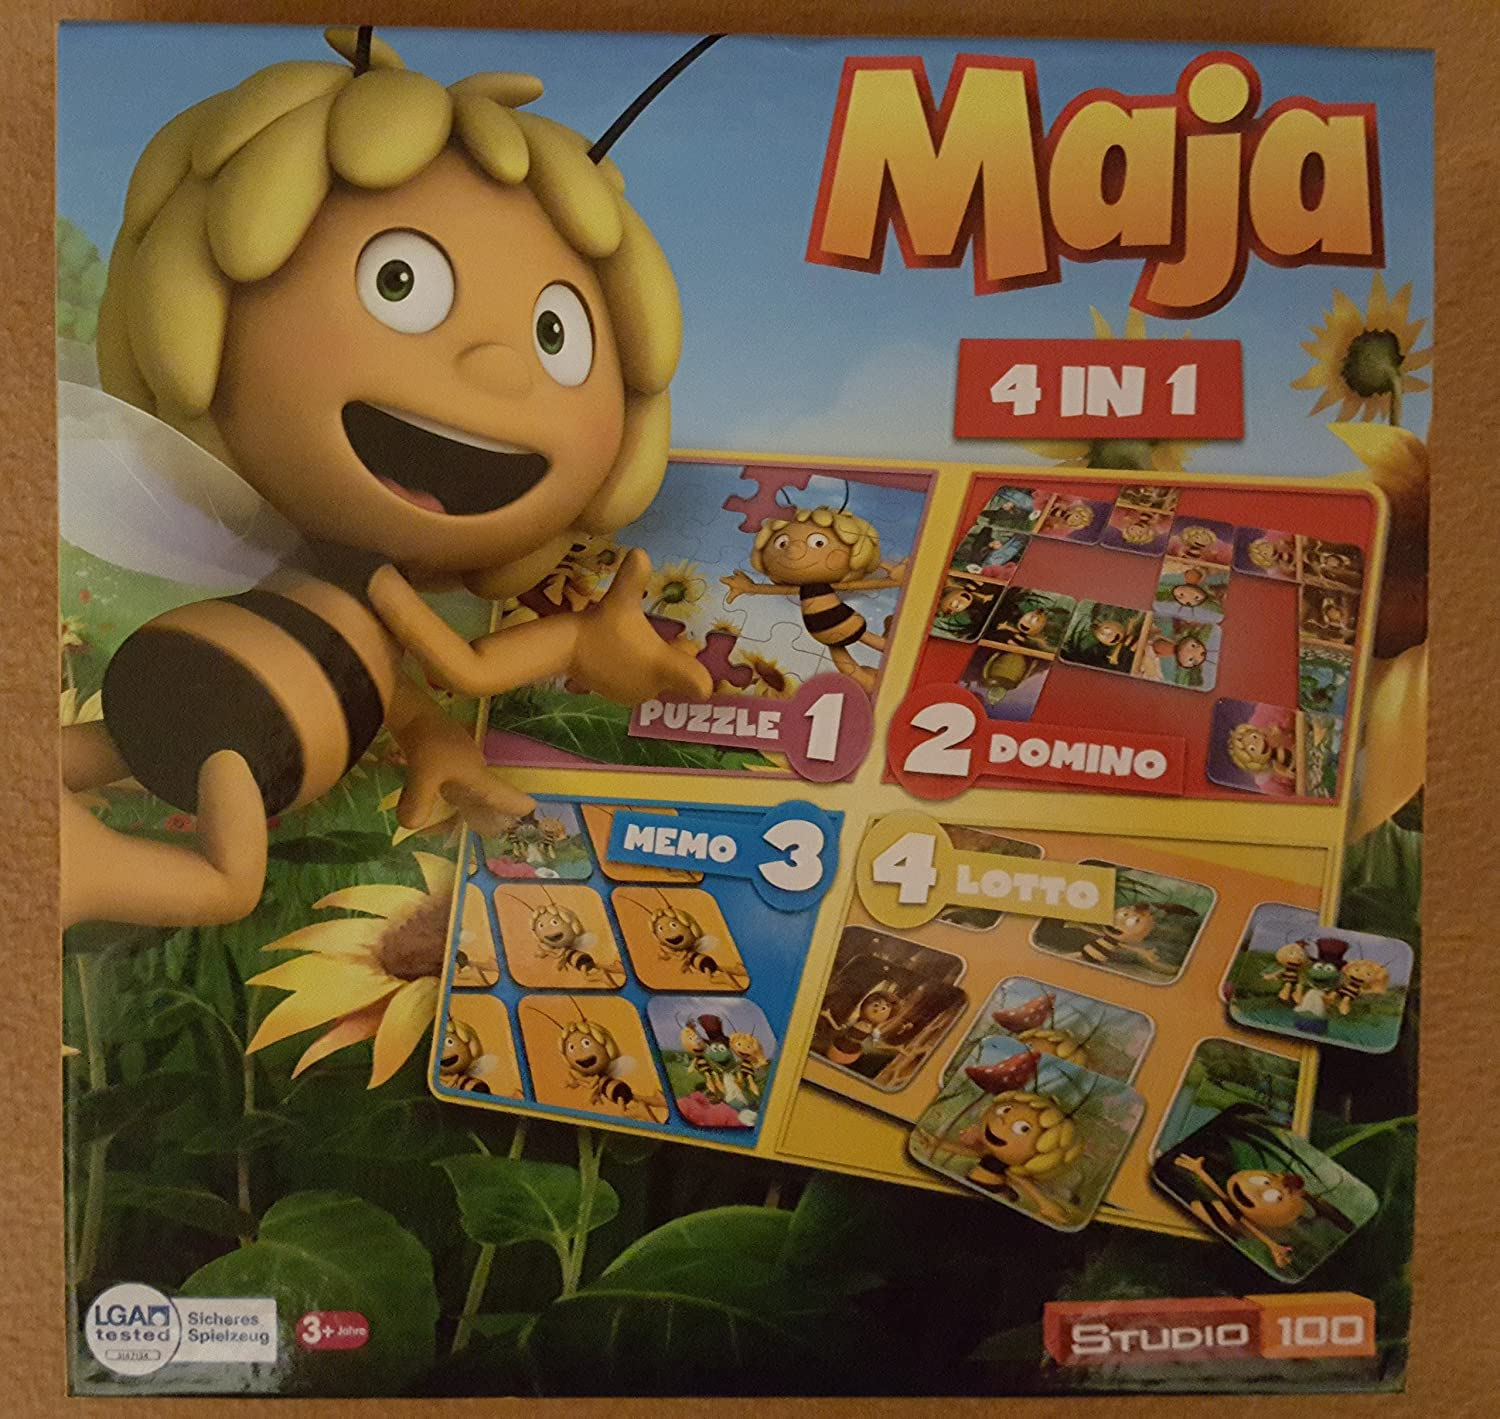 Biene Maja 4 in 1 Puzzle, Memo, Domino & Lotto Studio 100